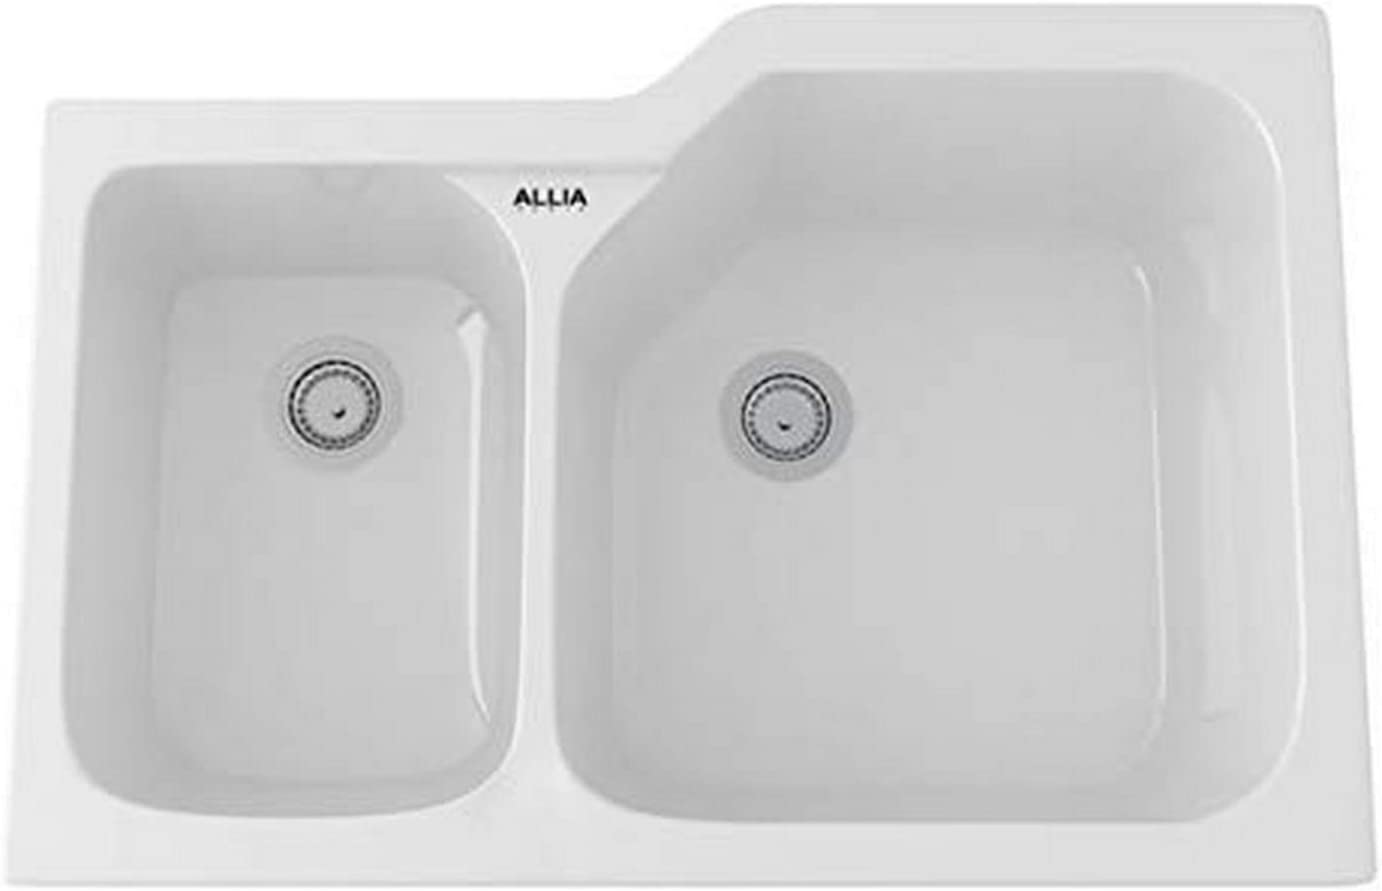 Rohl Financial sales sale 6339-00 FIRECLAY KITCHEN White SINKS 00 Popular